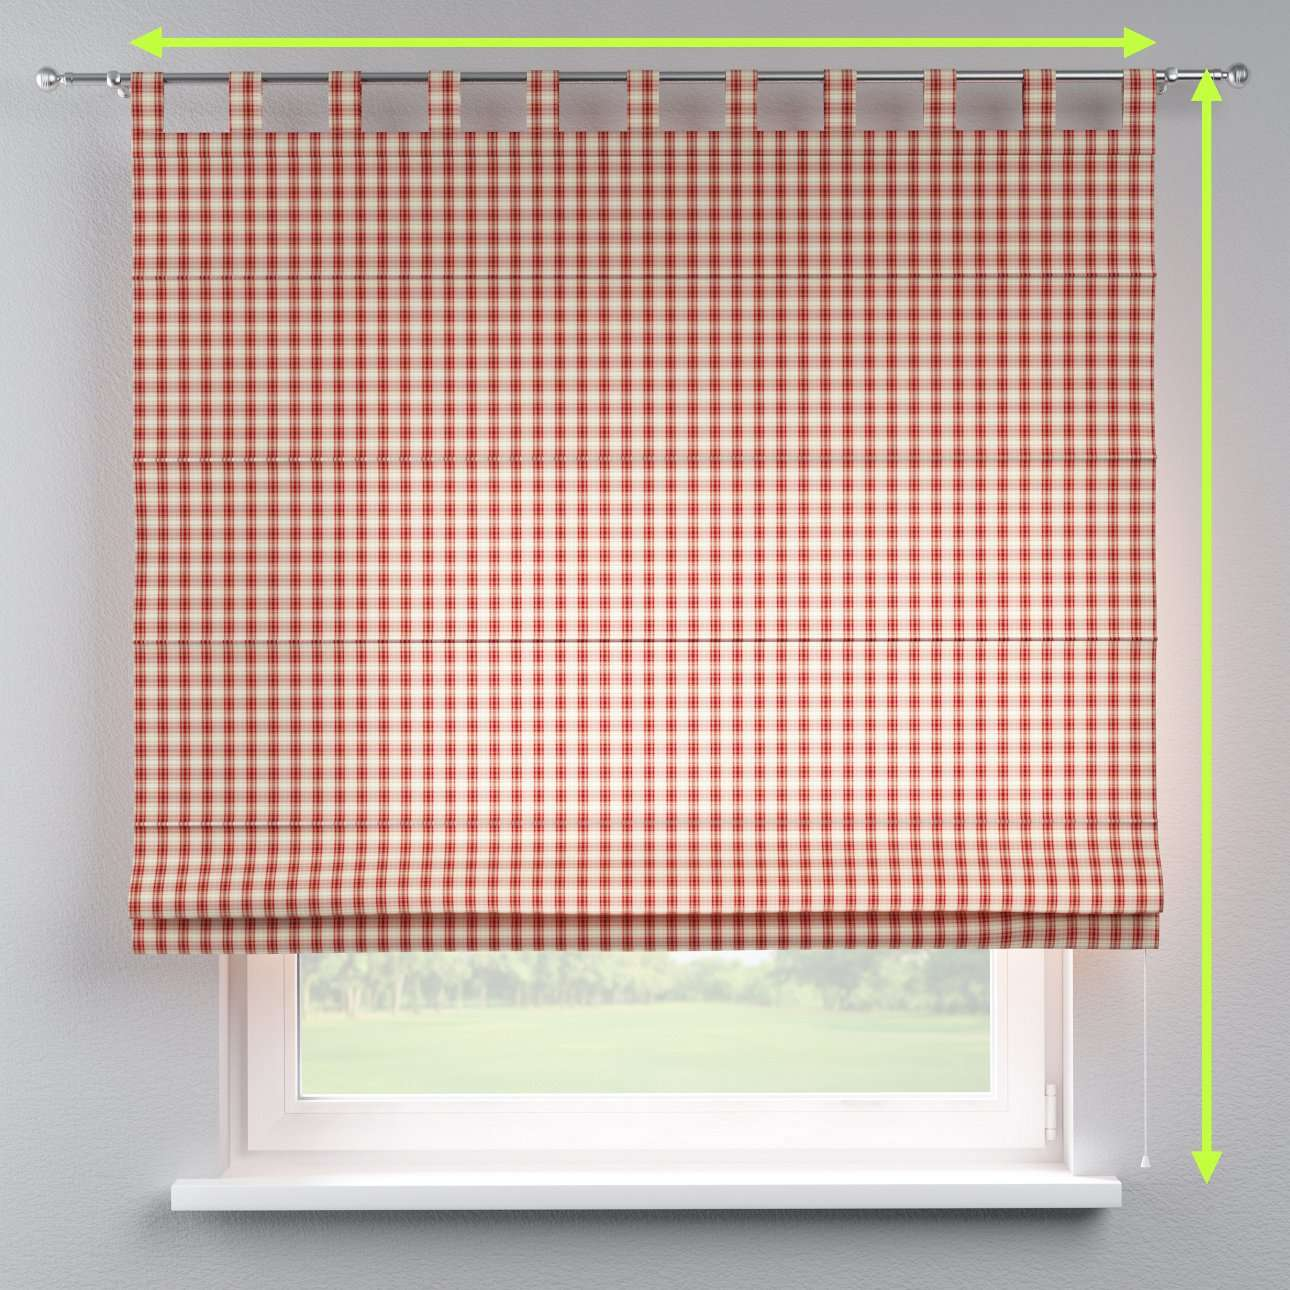 Verona tab top roman blind in collection Bristol, fabric: 126-09